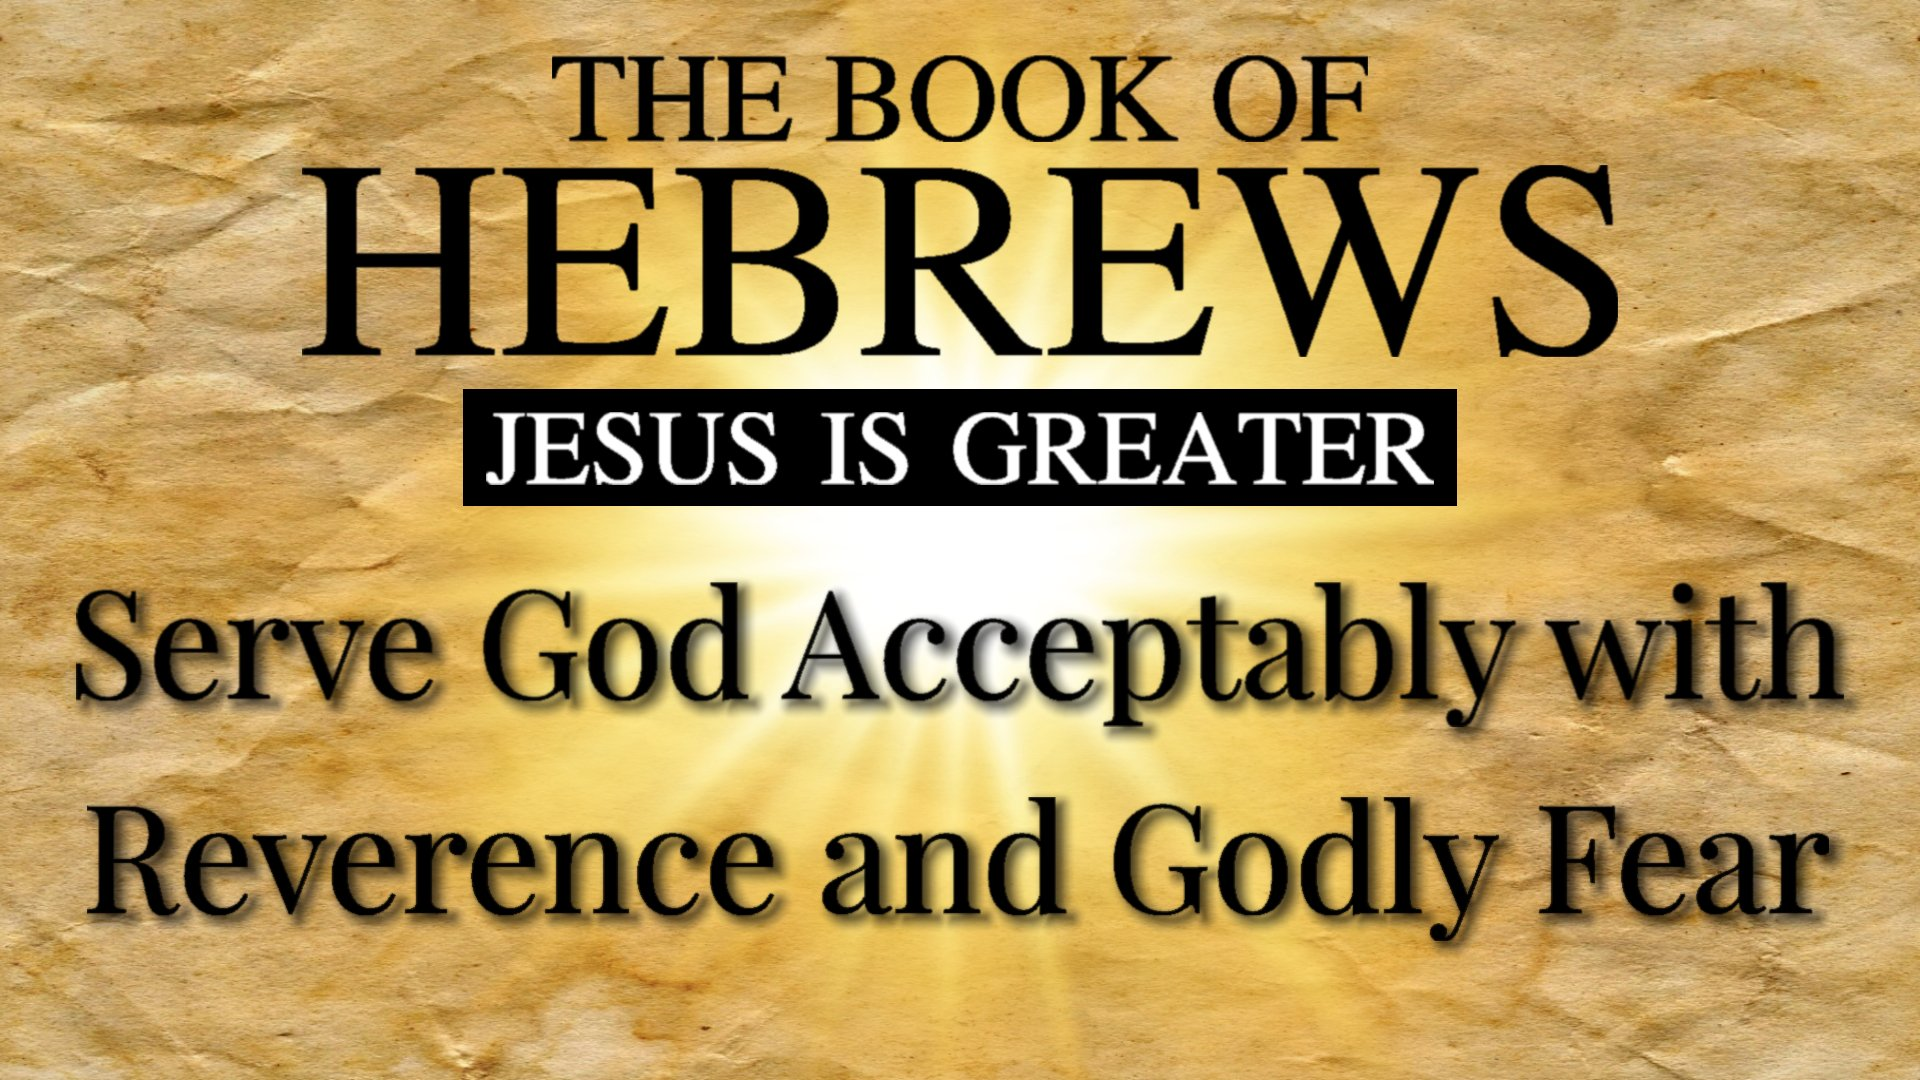 24 Serve God Acceptably with Reverence and Godly Fear